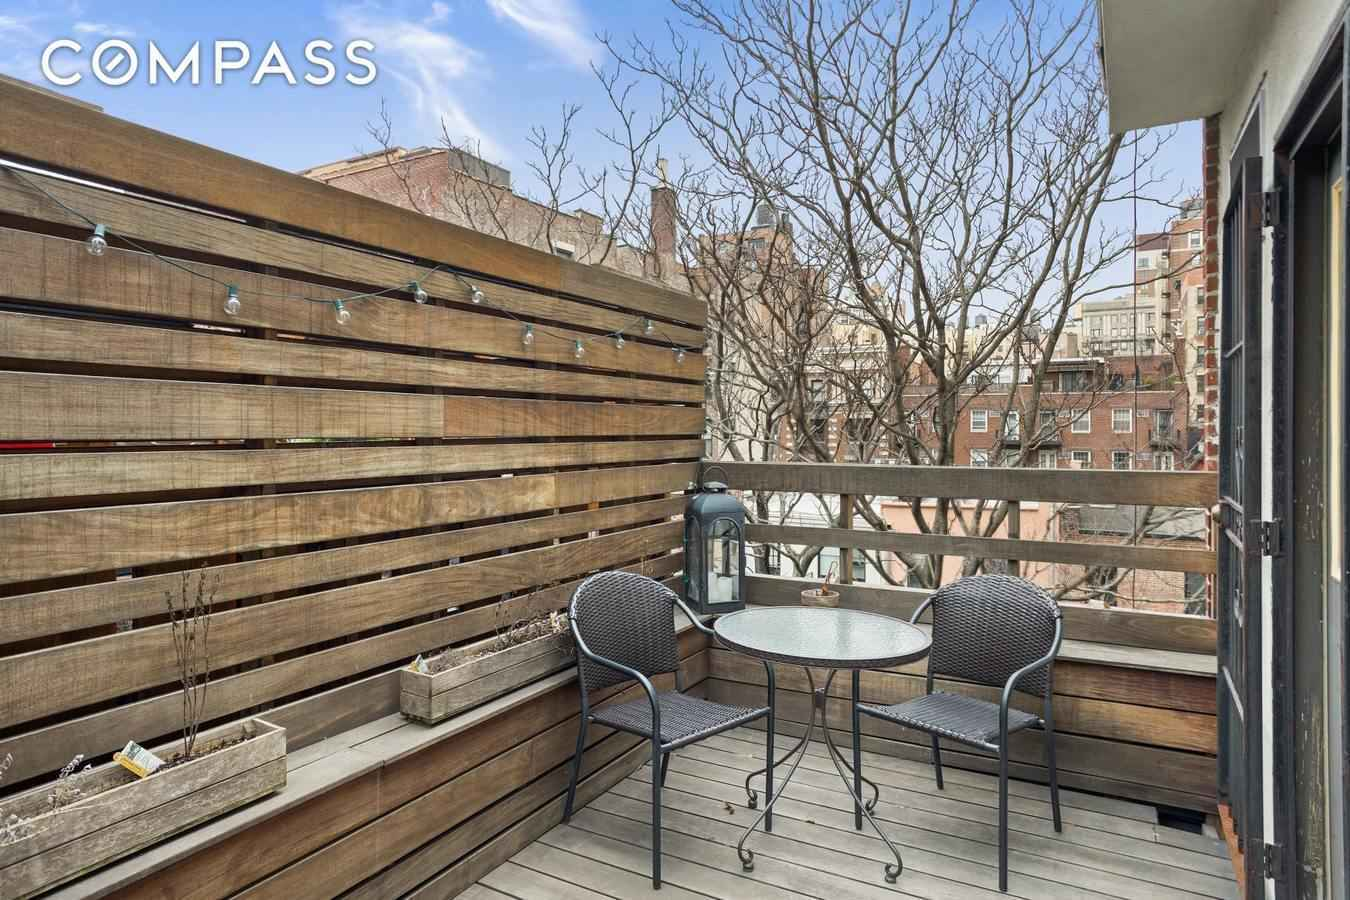 Apartment for sale at 307 West 82nd Street, Apt 4-B